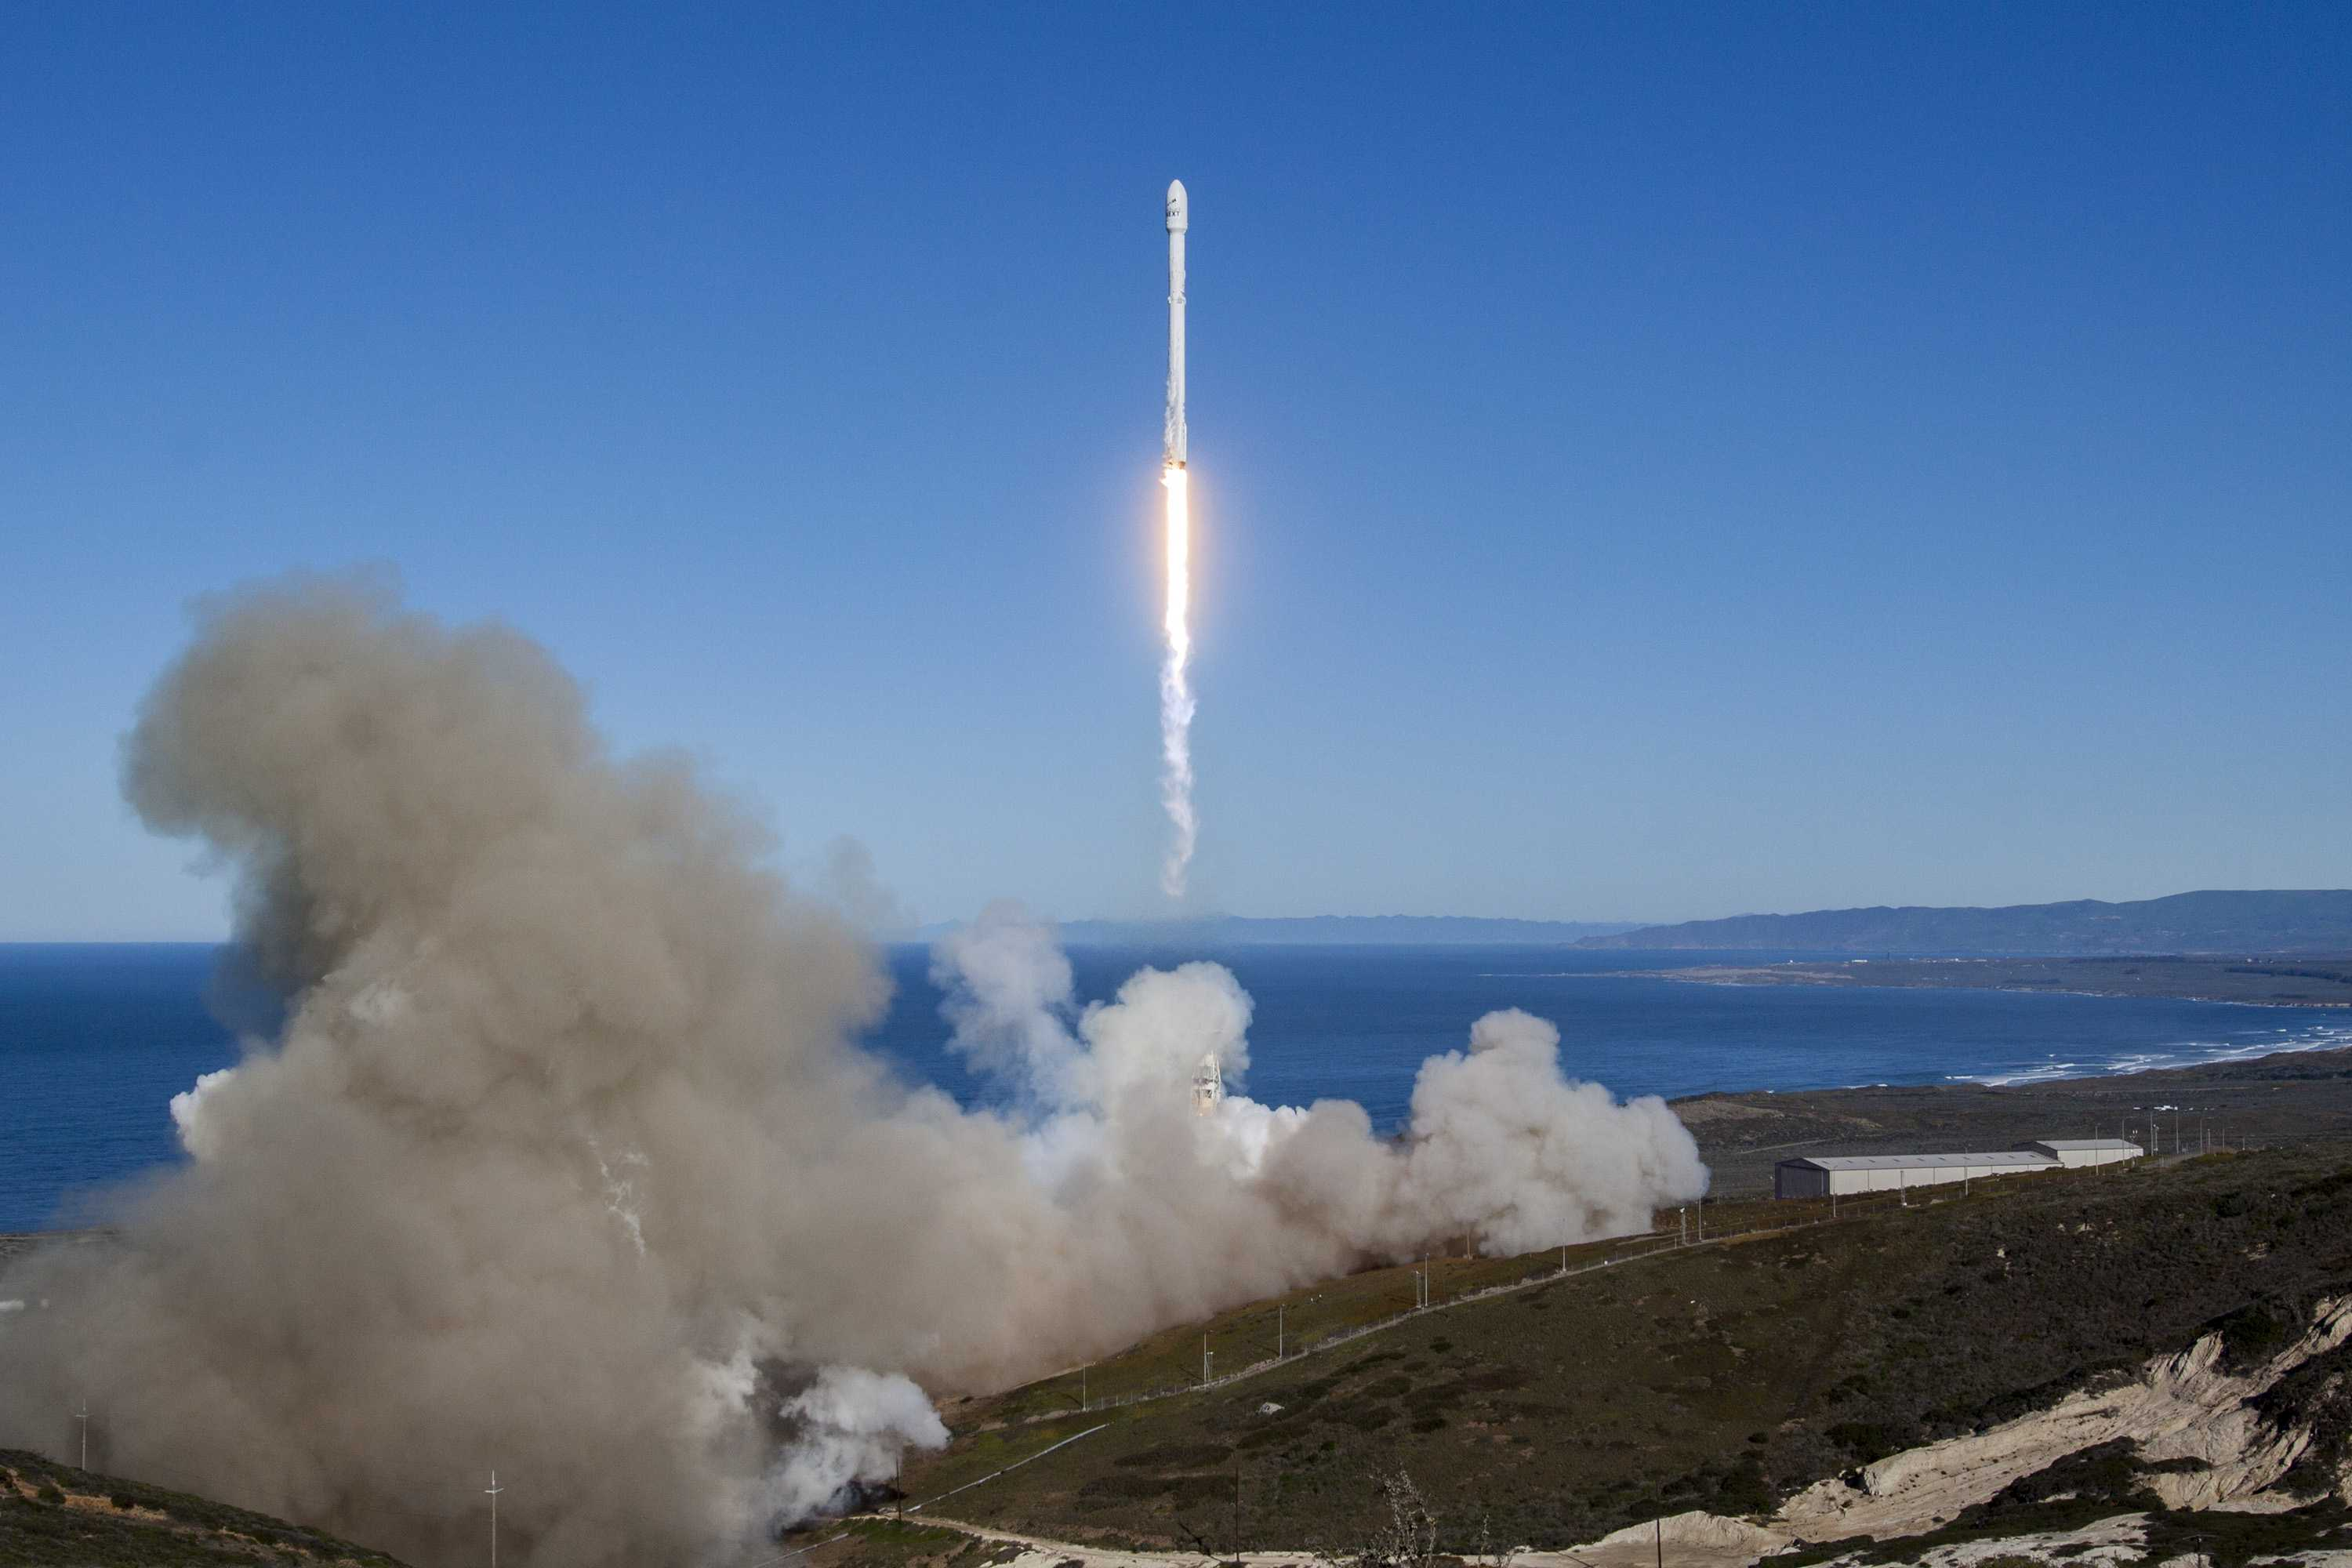 spacex may launch - HD3000×2000